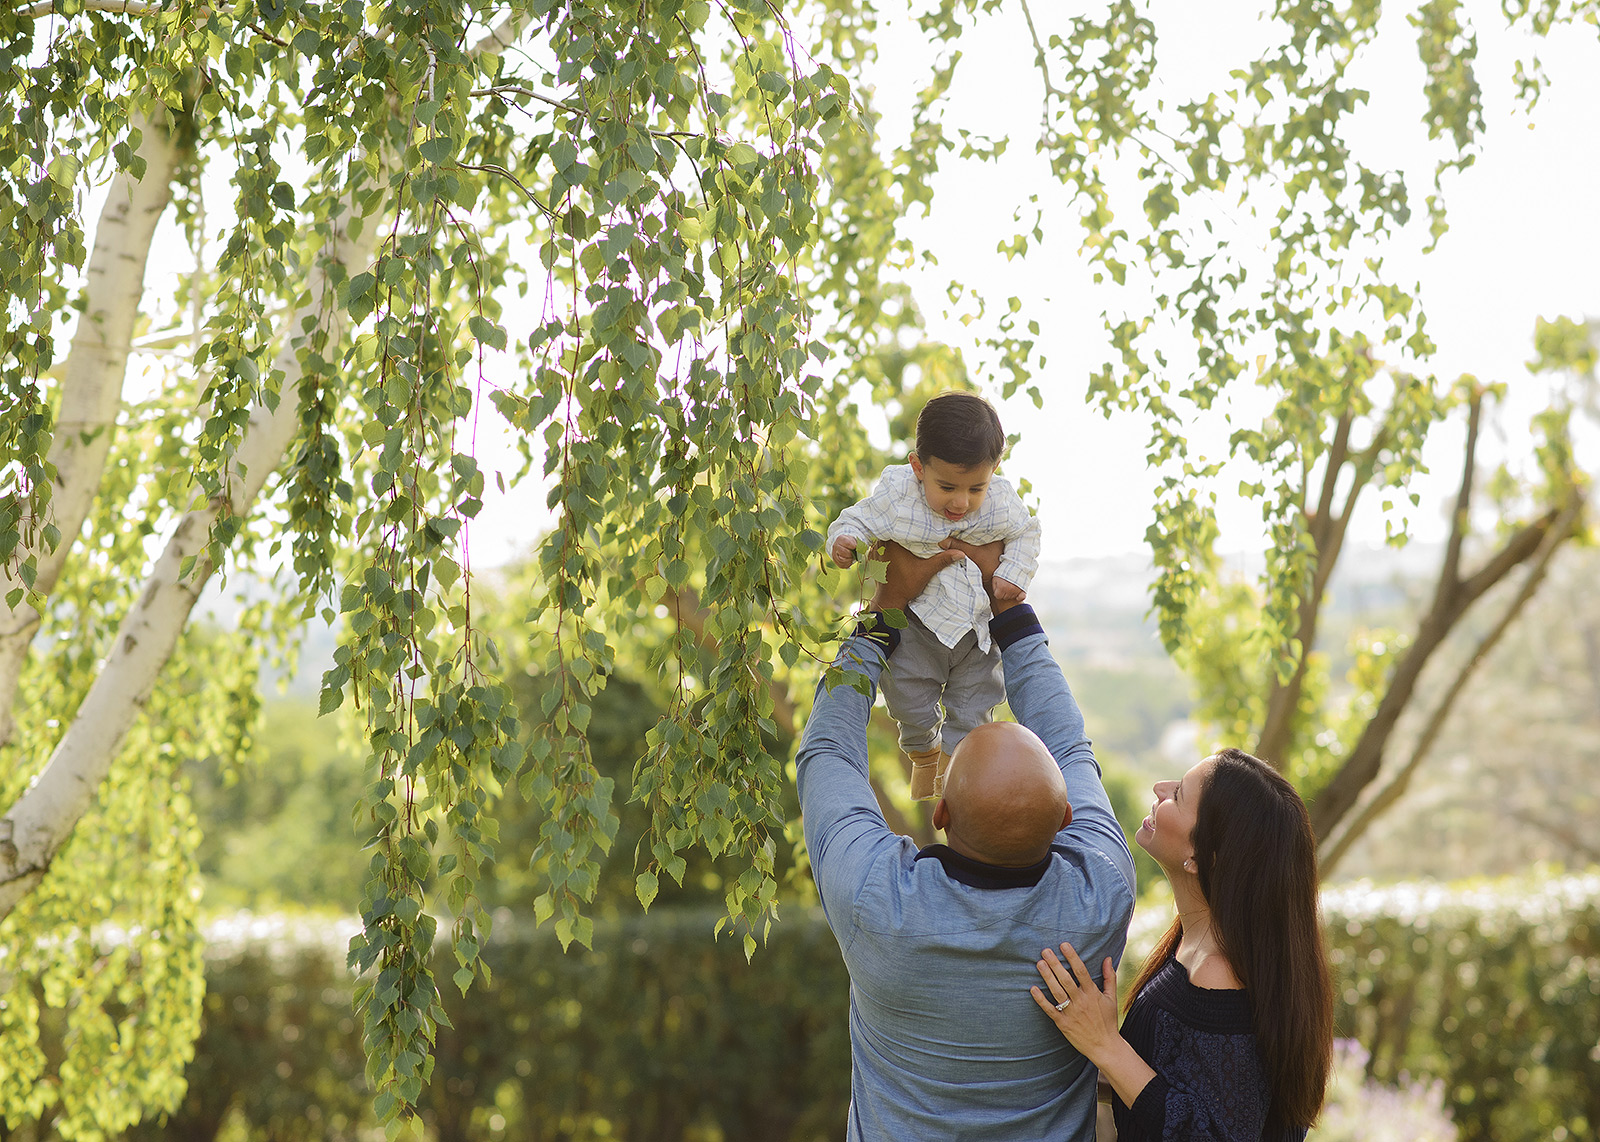 Mom, dad and baby boy playing outside with greenery and trees in a natural setting